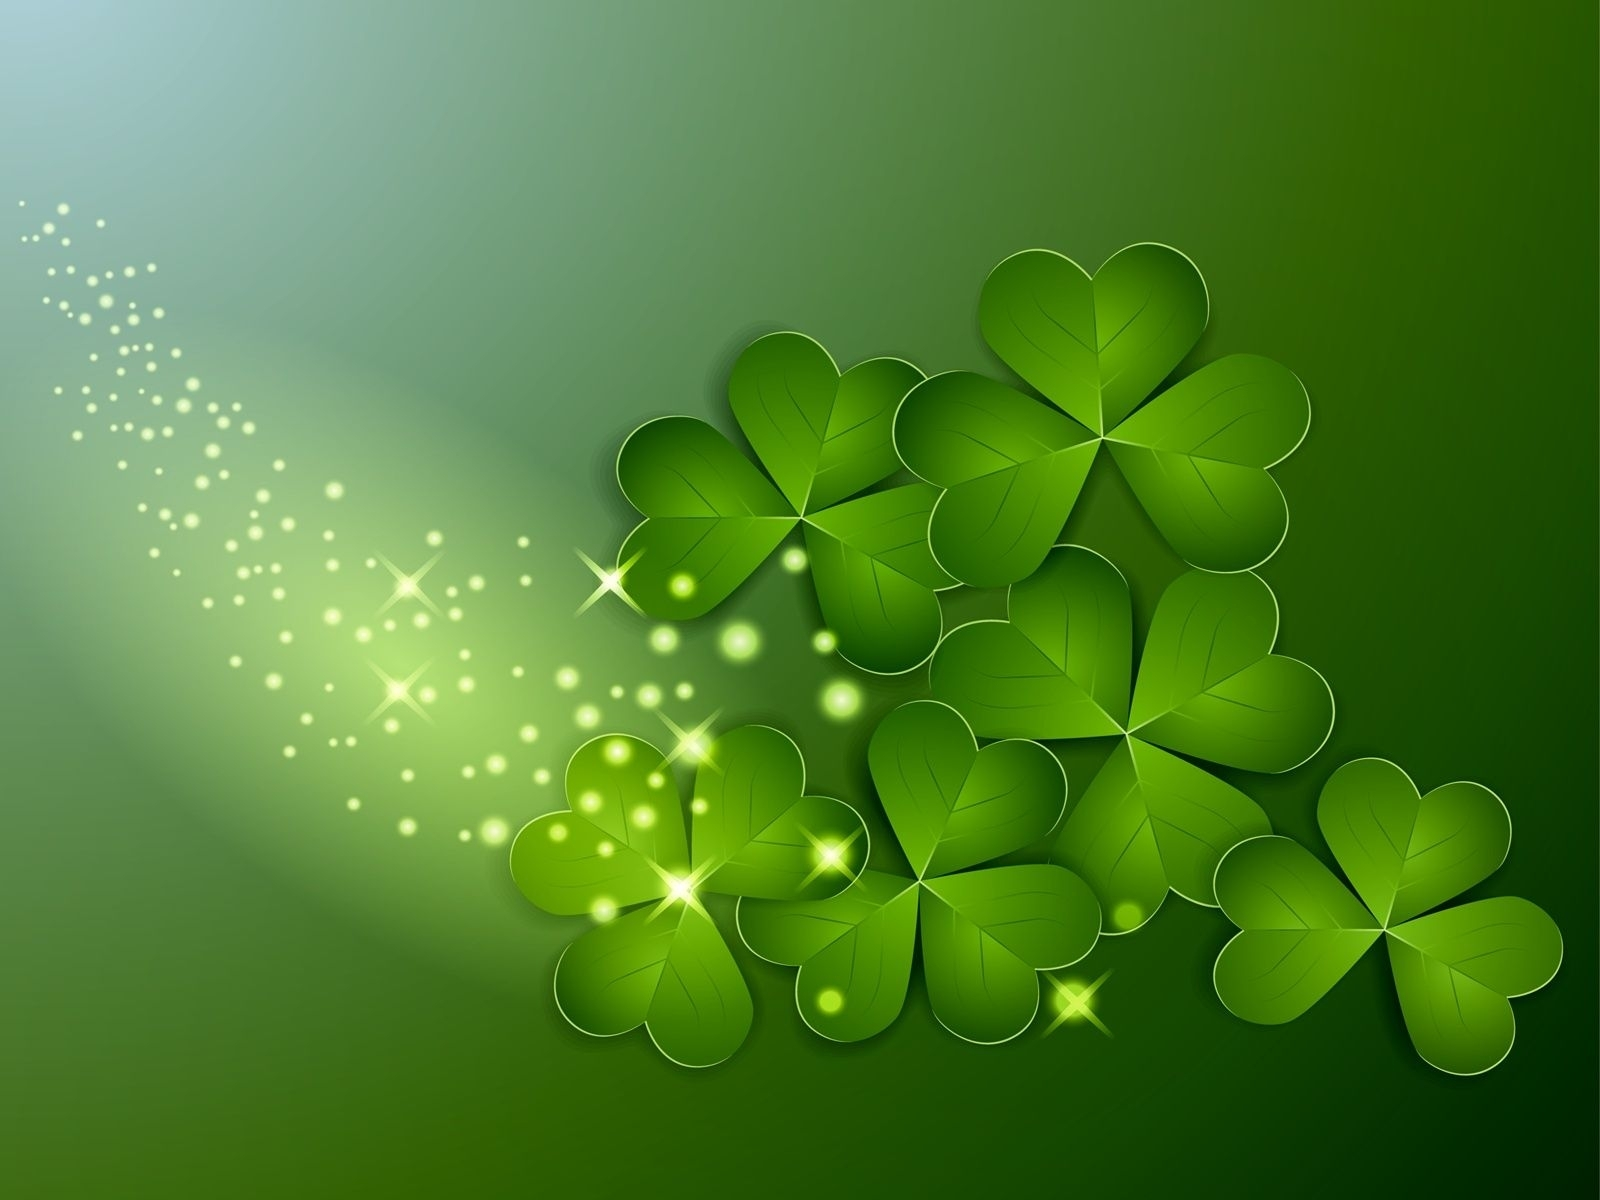 st. patrick's day pictures | st patrick's day wallpaper